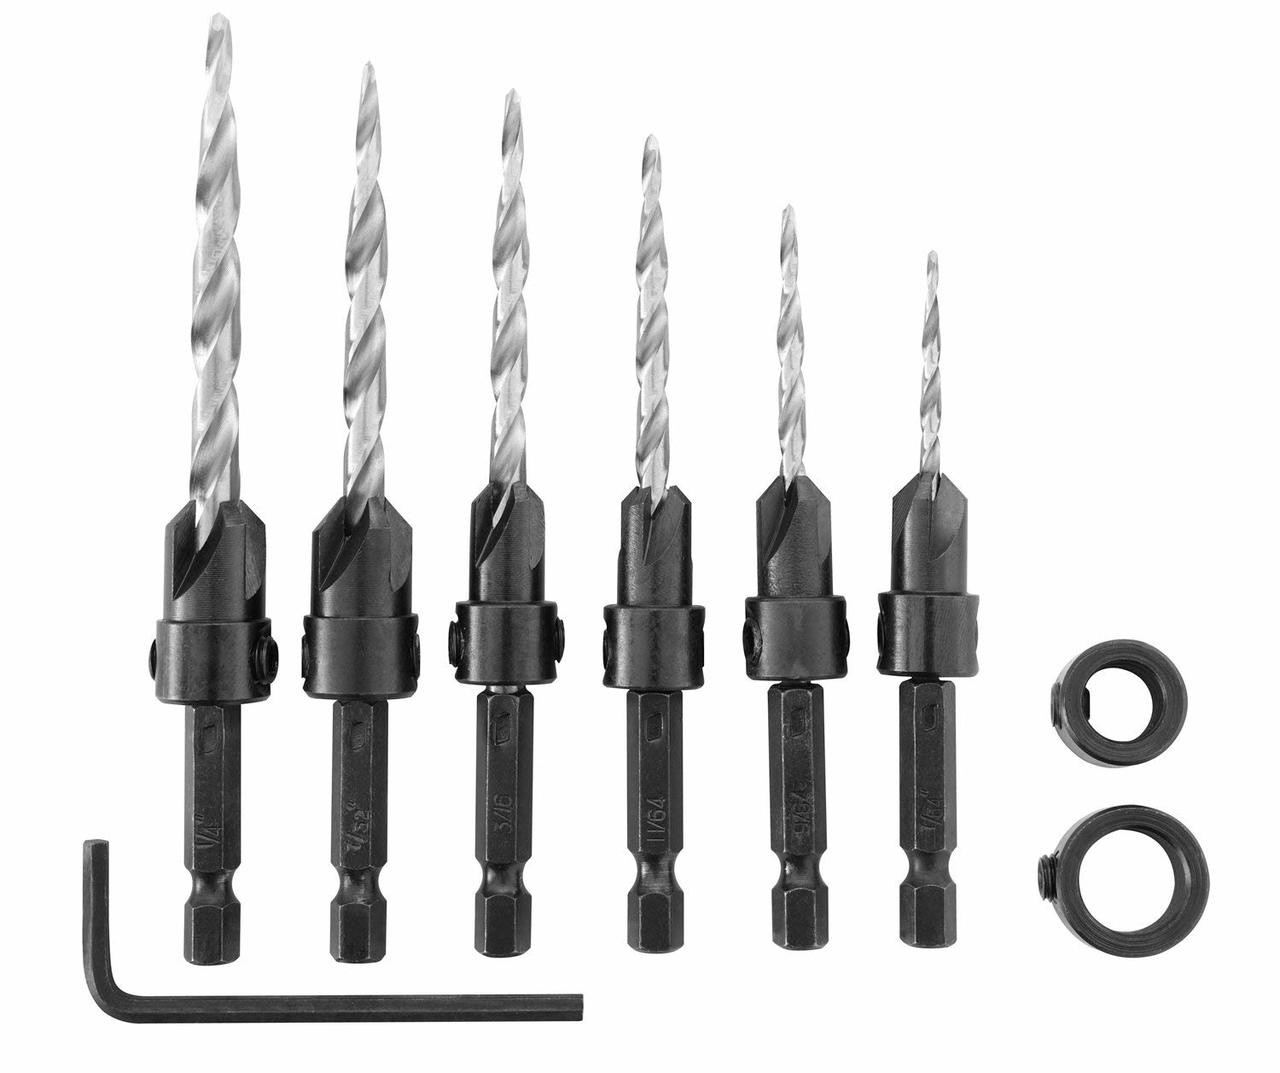 Countersink Drill Bit Set 8 Pieces Three Pointed High Speed Steel Drill with One L-wrench for Wood Drilling or Woodworking Chamfer by SeMorrow